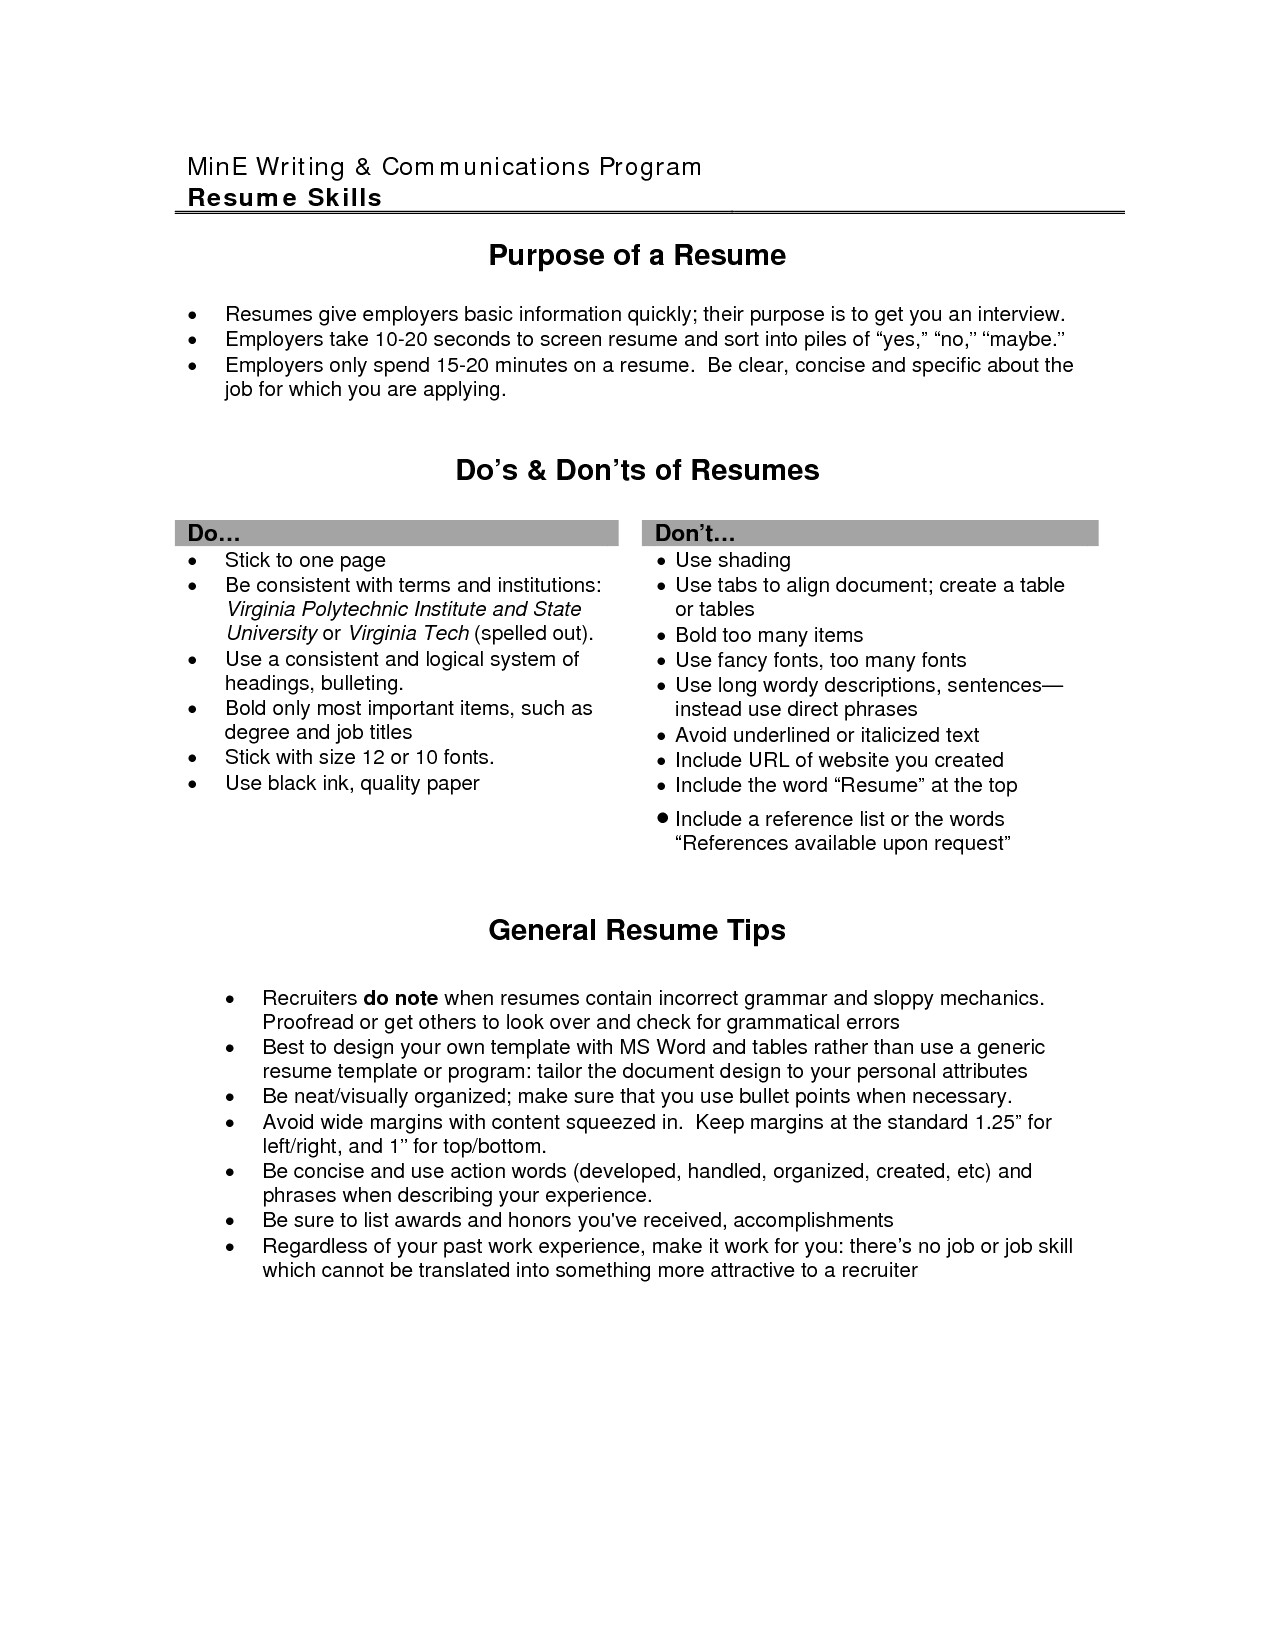 Resume Objective Examples  General Resume Objective Examples Elegant Samples Of 15 Basic Cmt